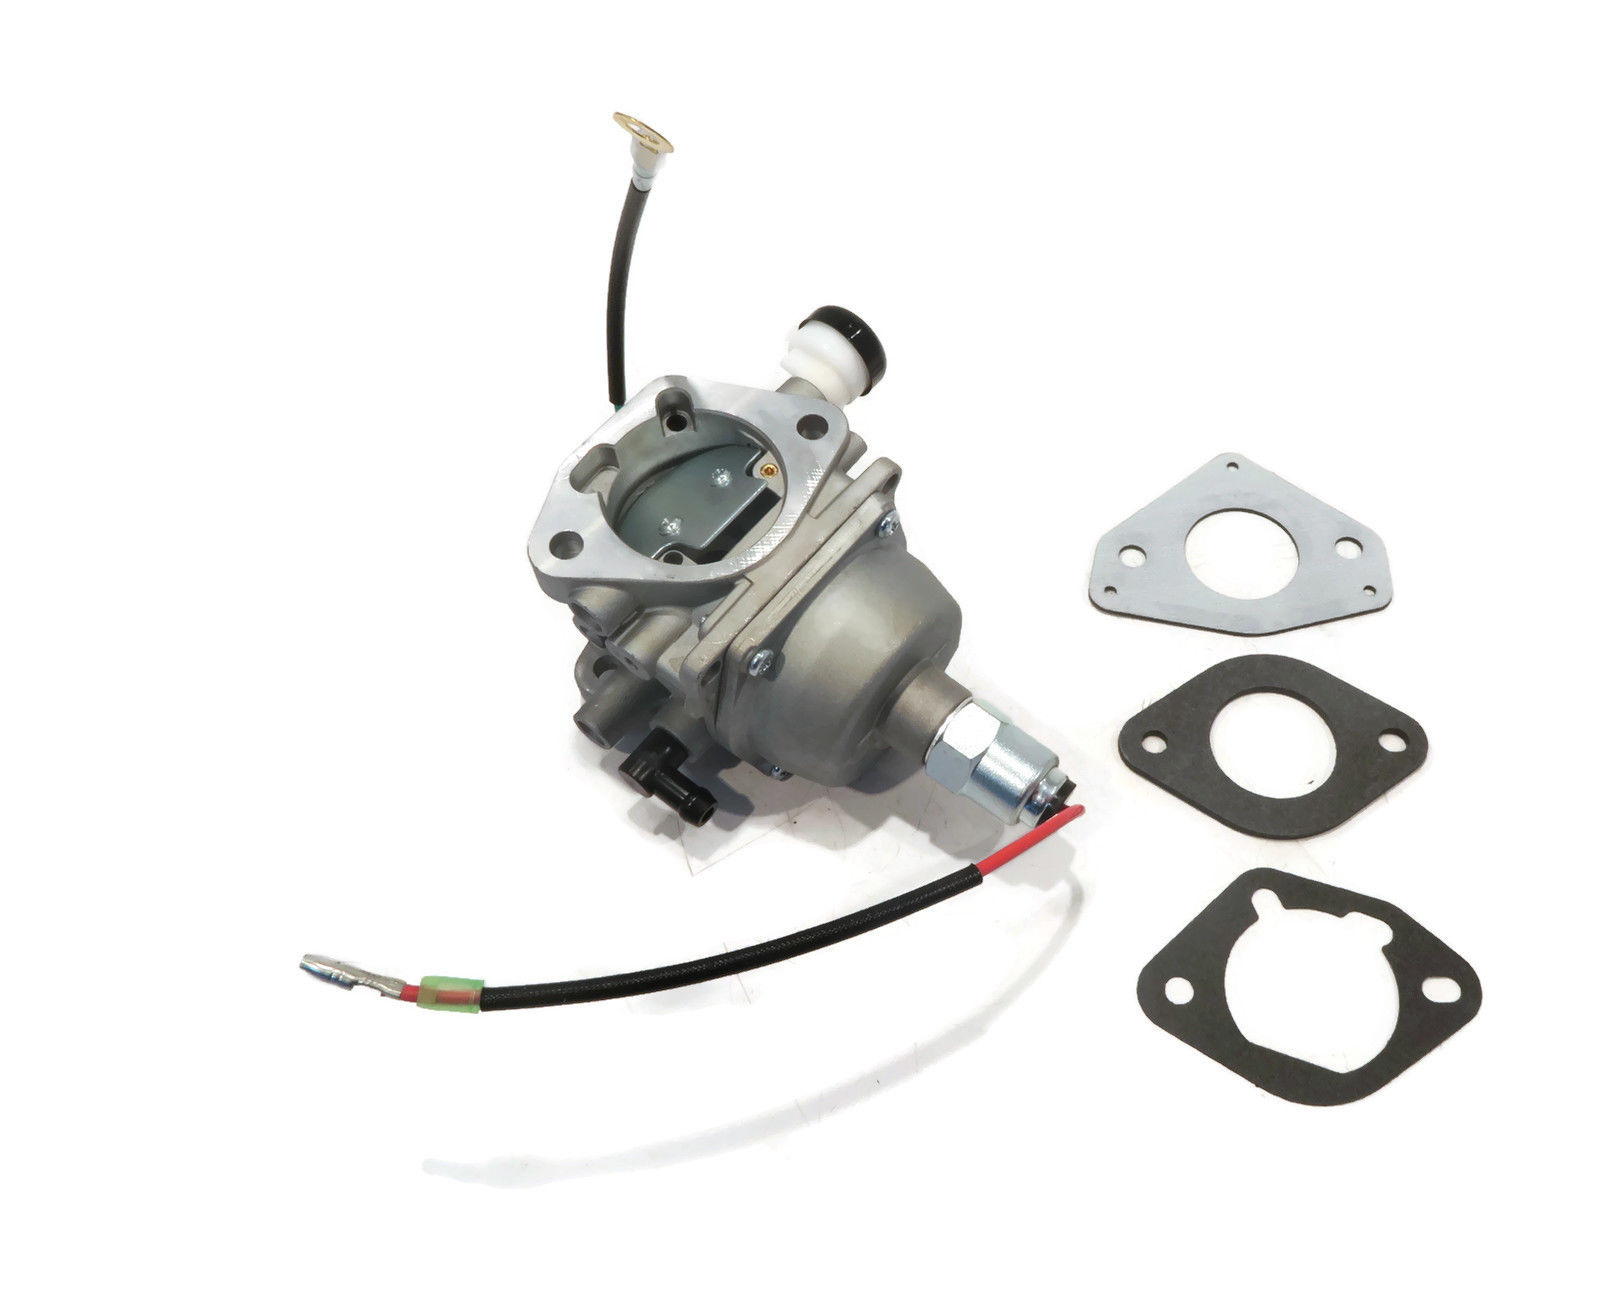 75534 Cv22s Kohler Engine Wiring Content Resource Of Diagram Carburetor Carb Fits Cv22 75578 75583 Rh Walmart Com Command